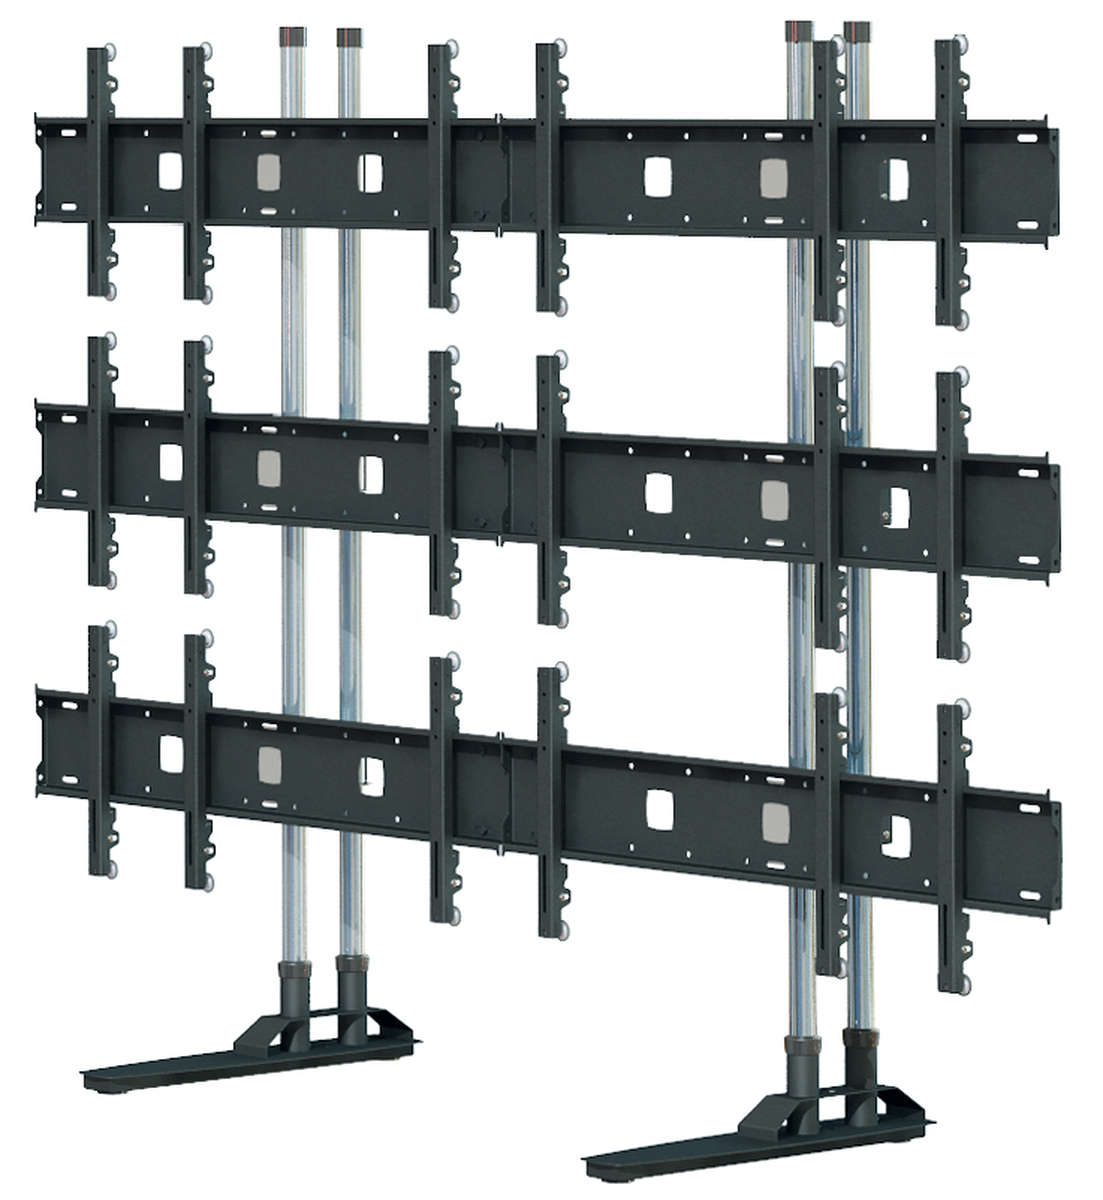 "Unicol SIM2 Simplex 3x3 Video wall floor stand for screens around 55"" product image"